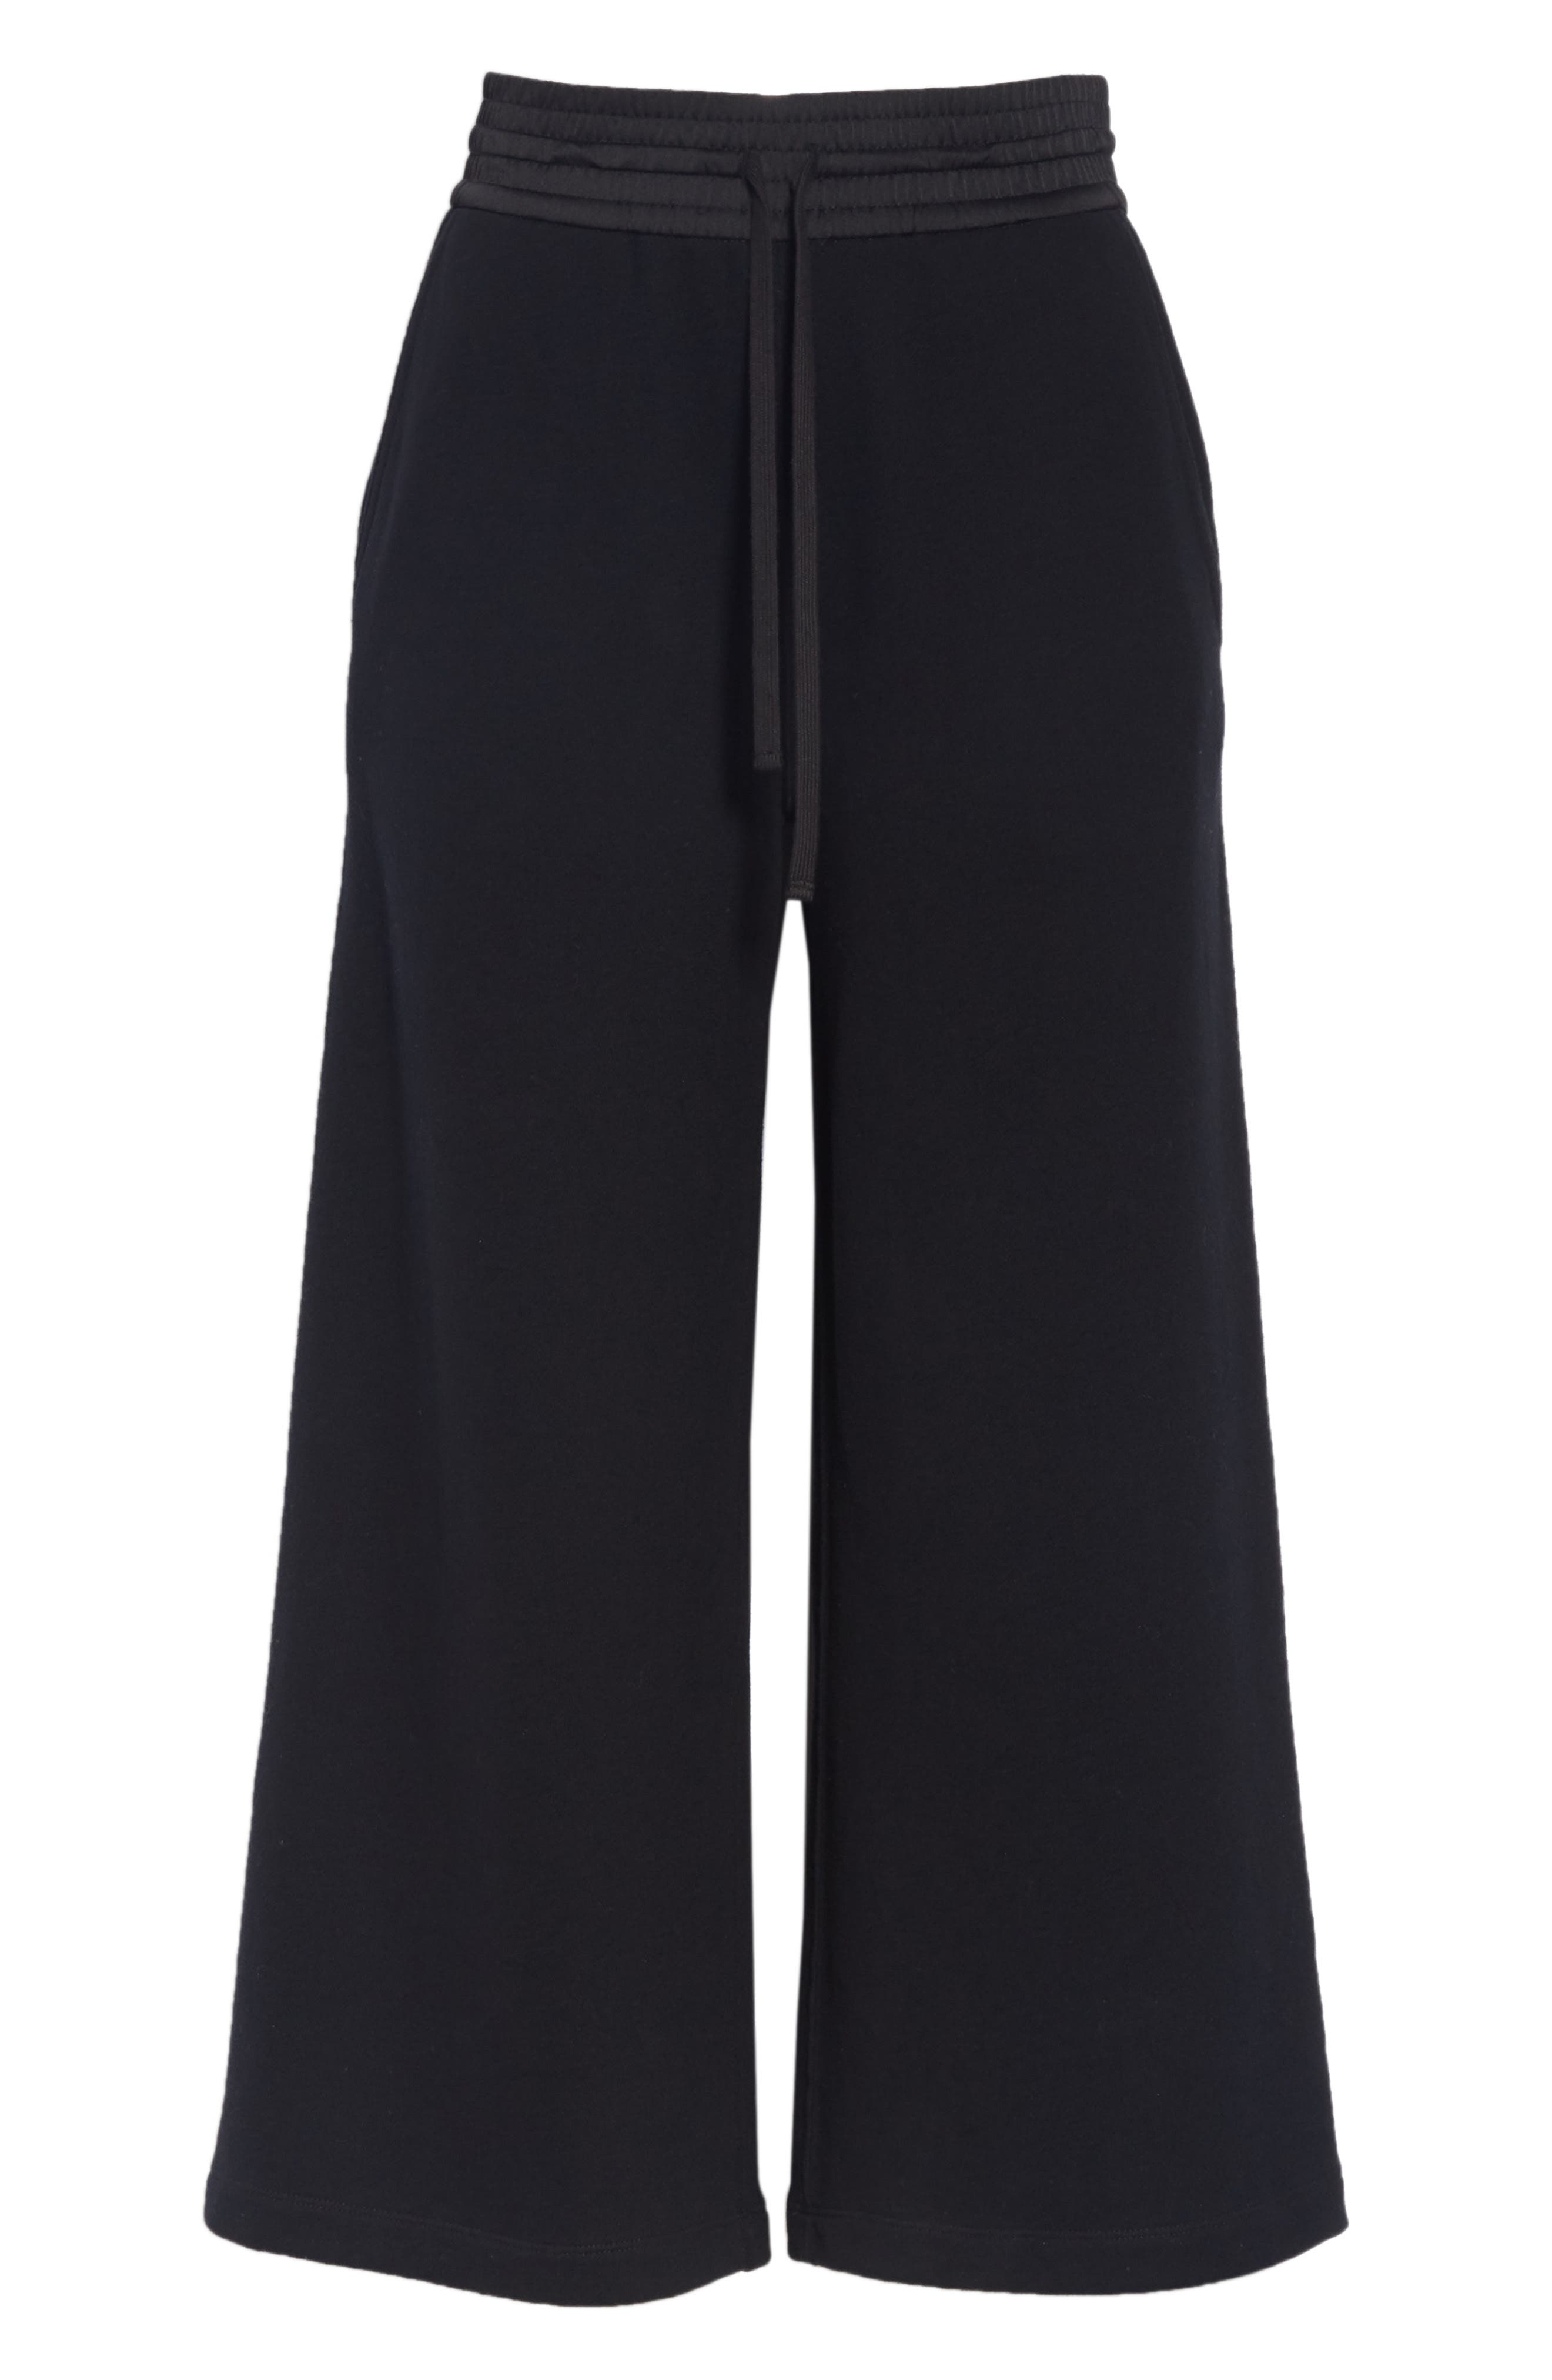 Cotton Culottes,                             Alternate thumbnail 6, color,                             BLACK